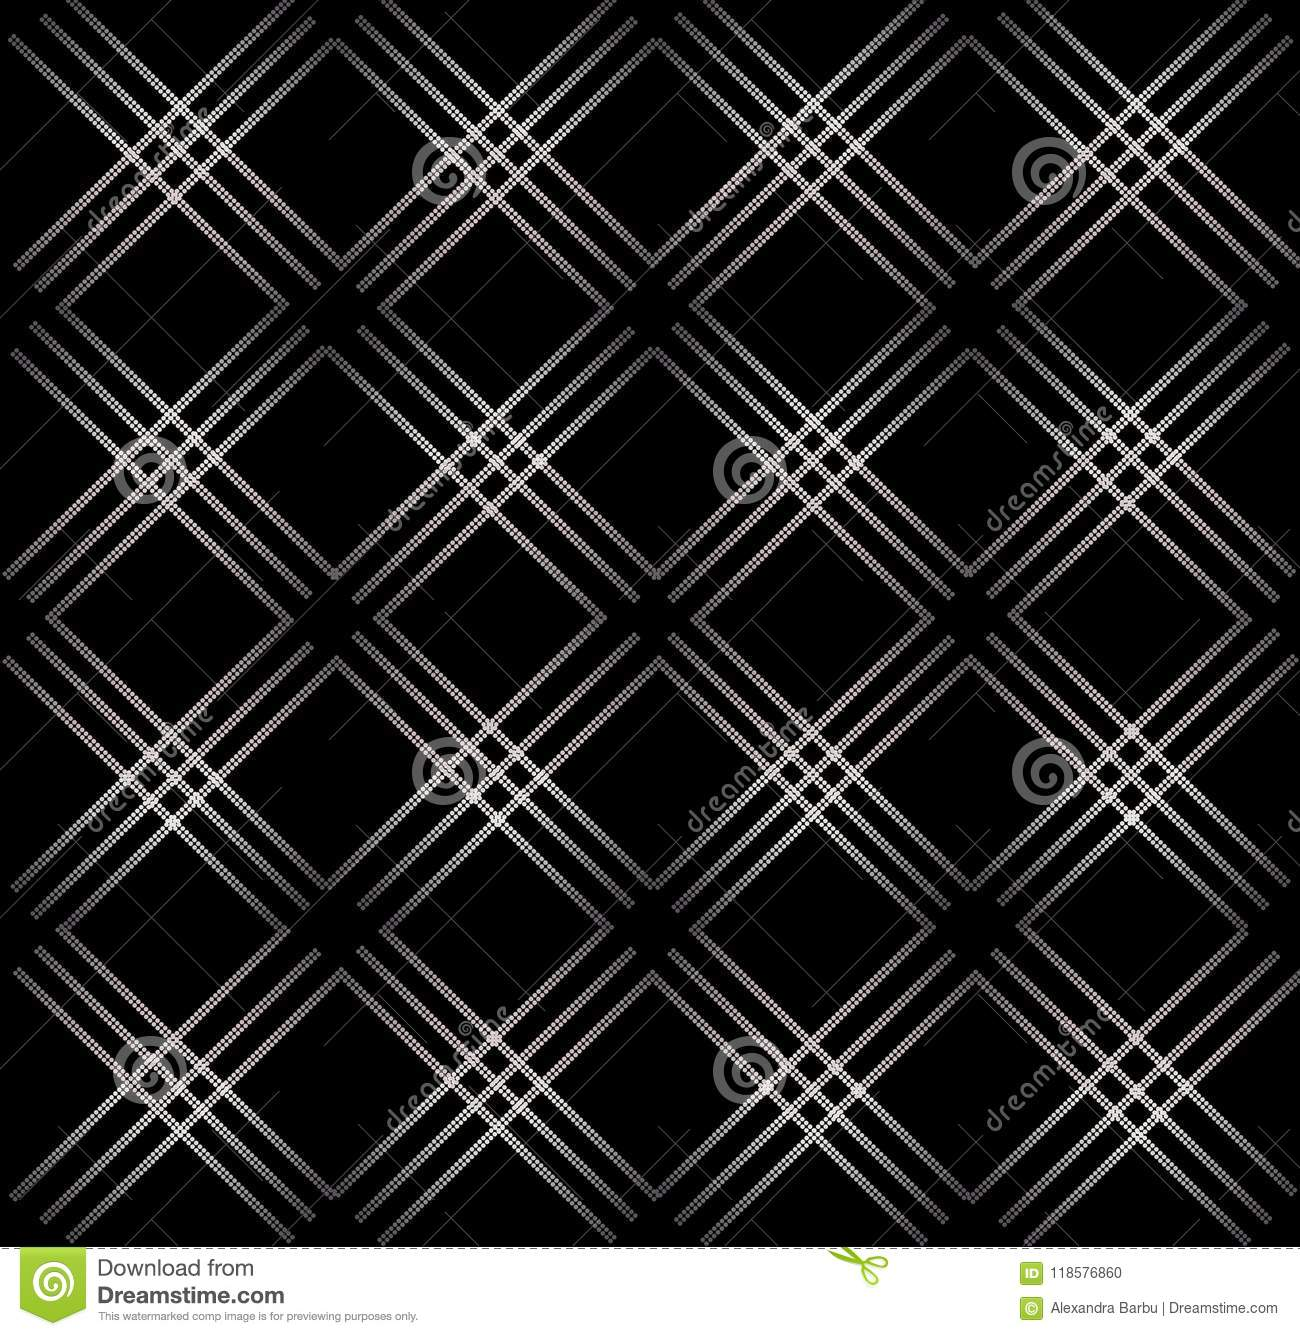 Elegant abstract geometric seamless pattern black background